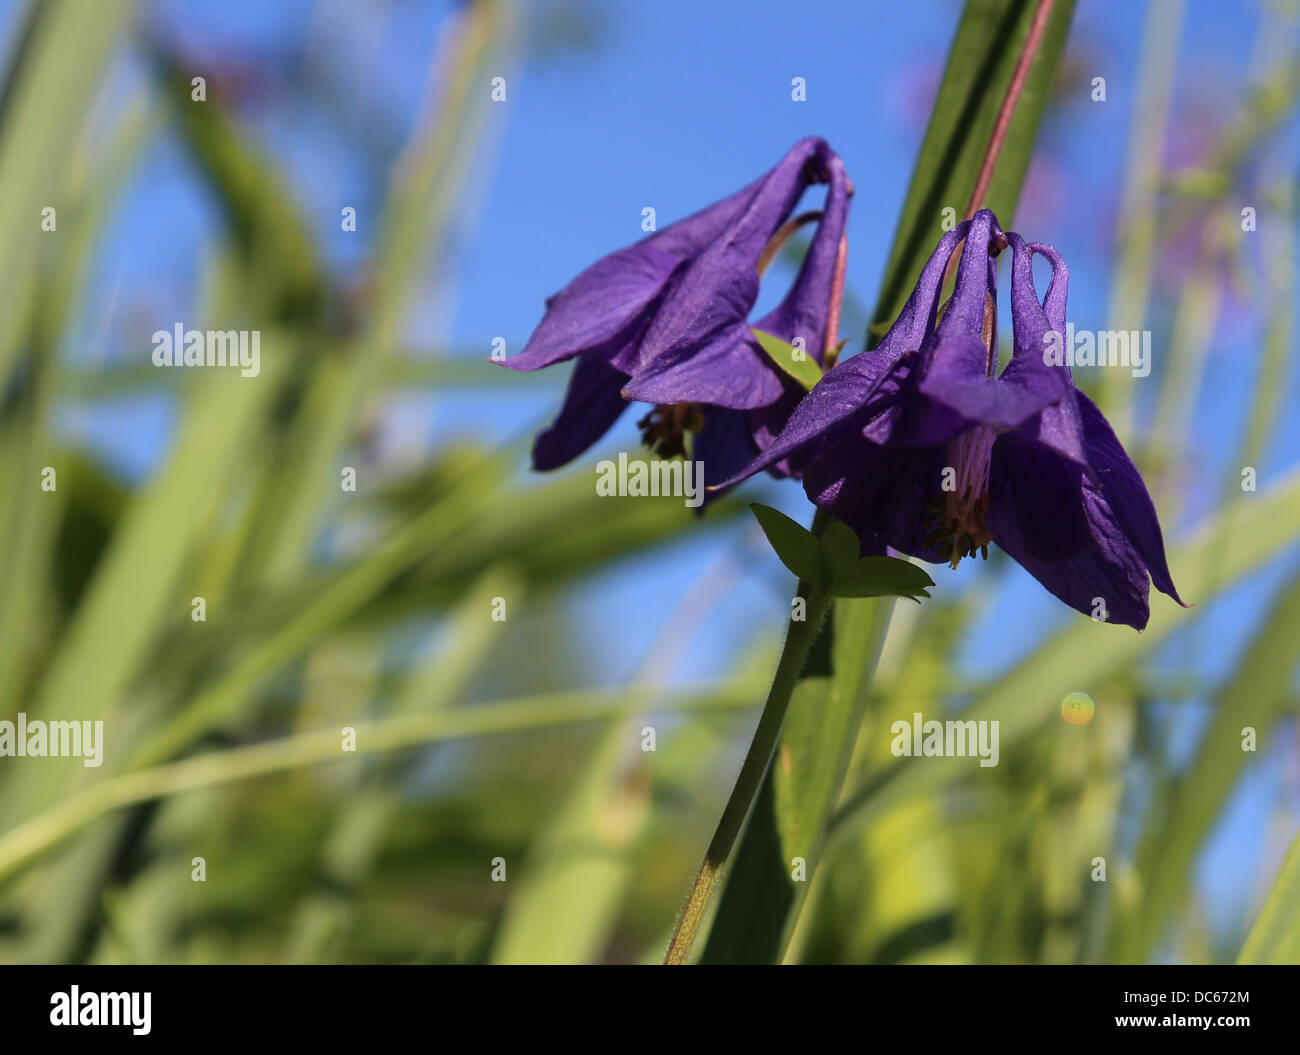 Aquilegia, violet coloured, shot from below - Stock Image